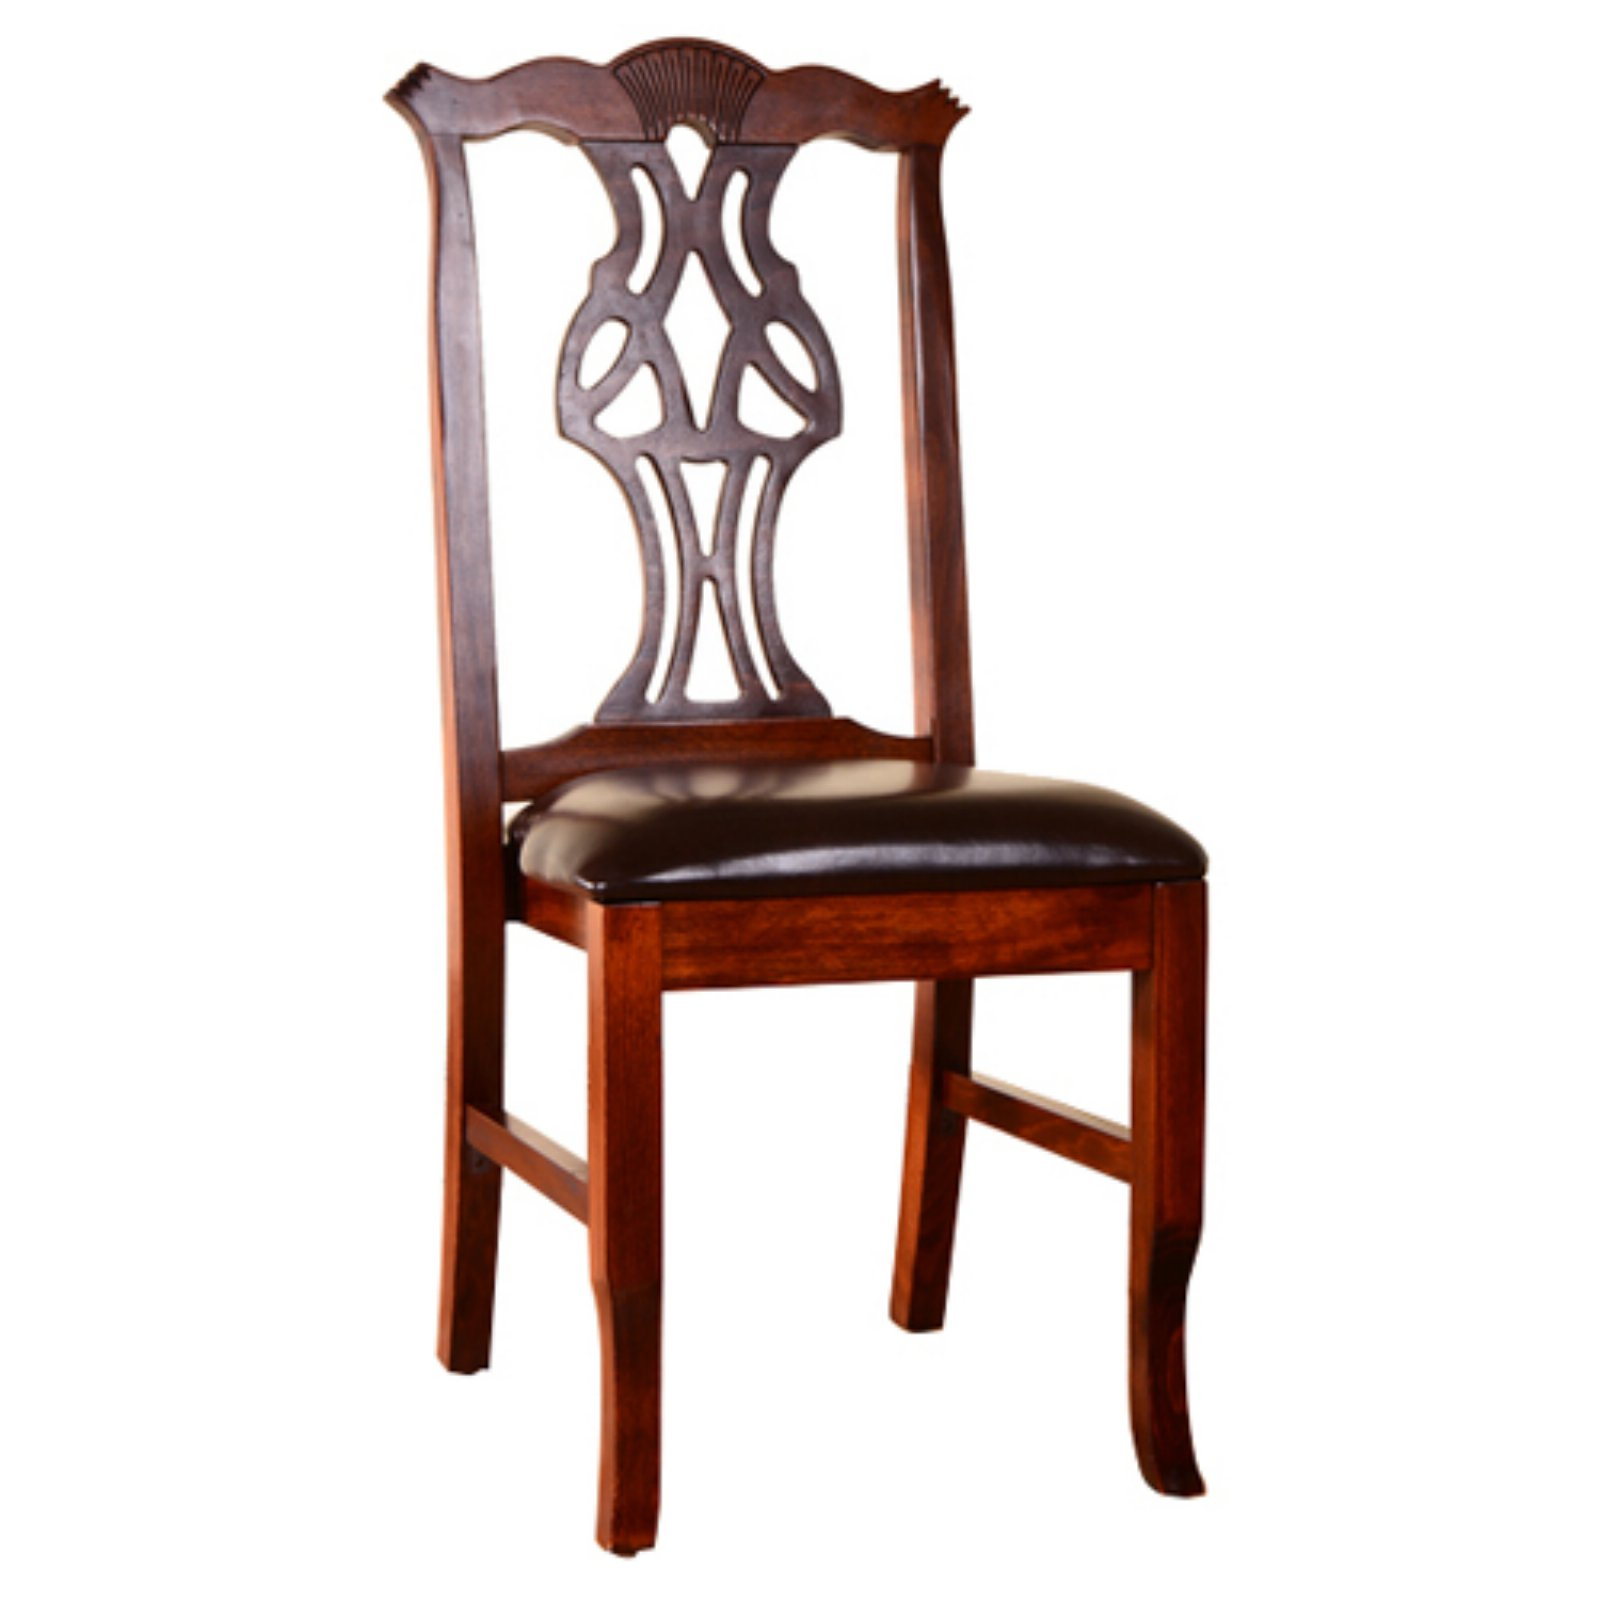 Stacking Dining Chairs Safsil Seating Chippendale Stacking Dining Chair